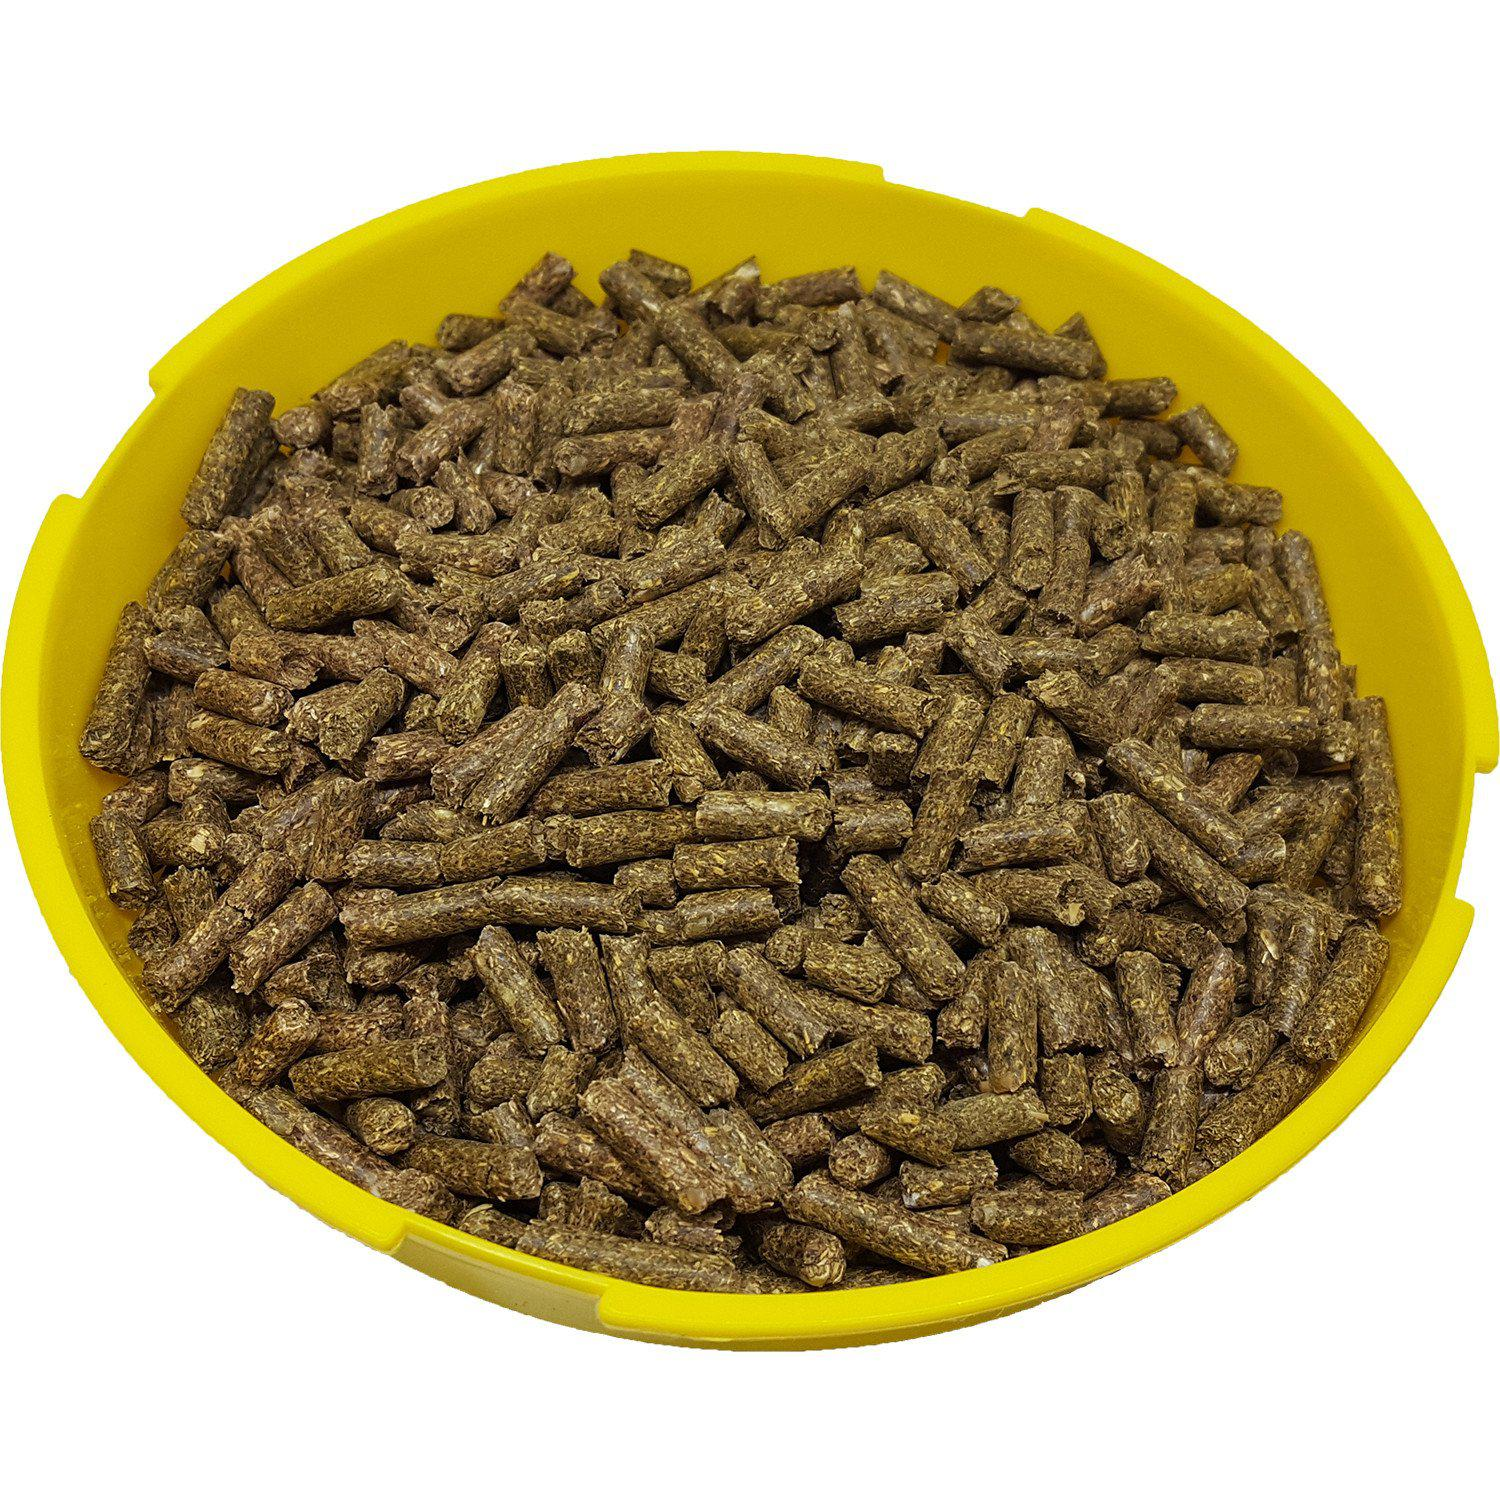 HI-PRO FEEDS® ProForm Rabbit Pellets 18% 20 KG Bag - Critter Country Supply Ltd.